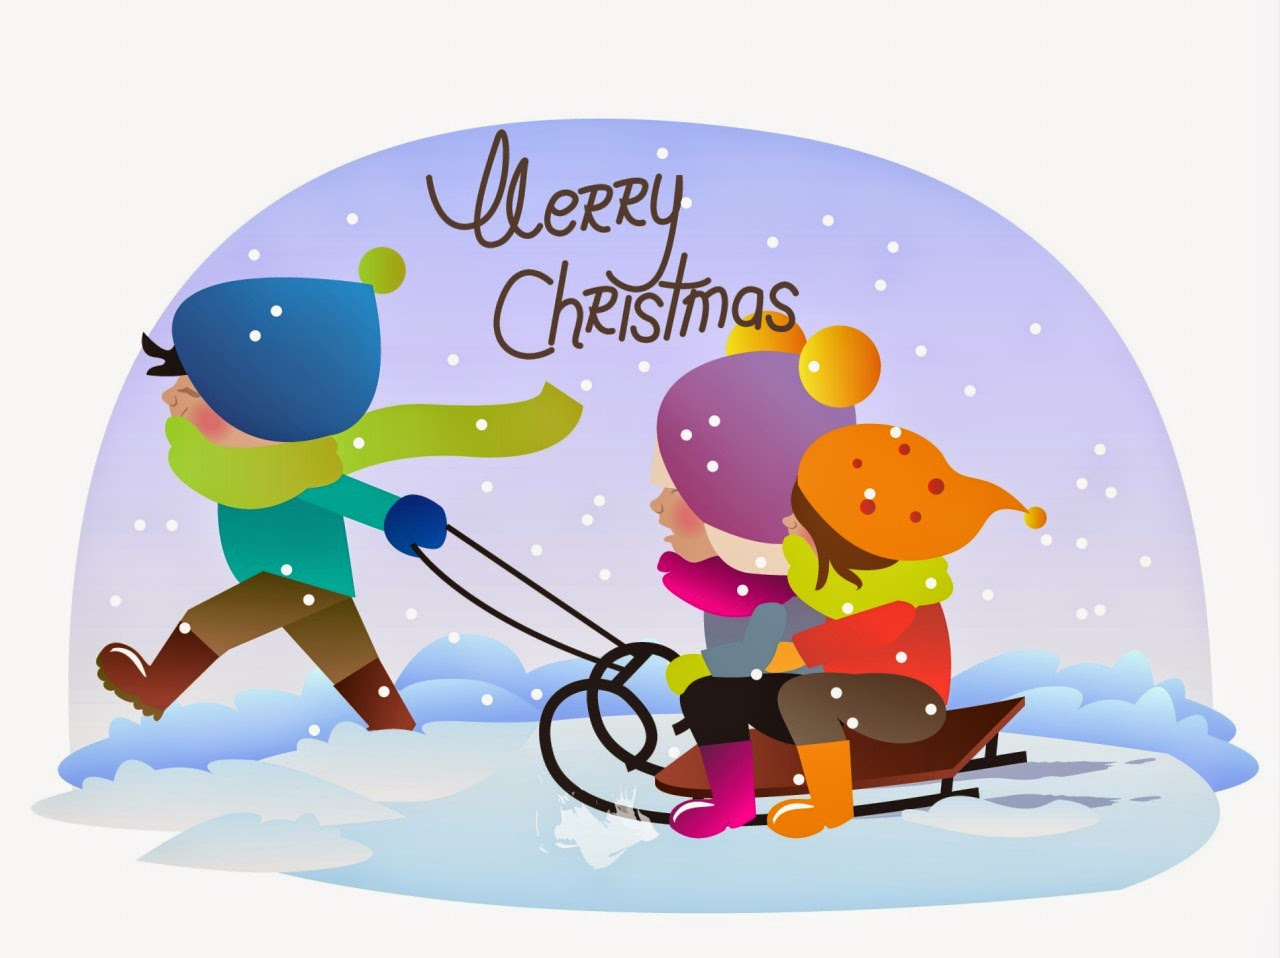 merry christmas greeting card hd images free download pixhome